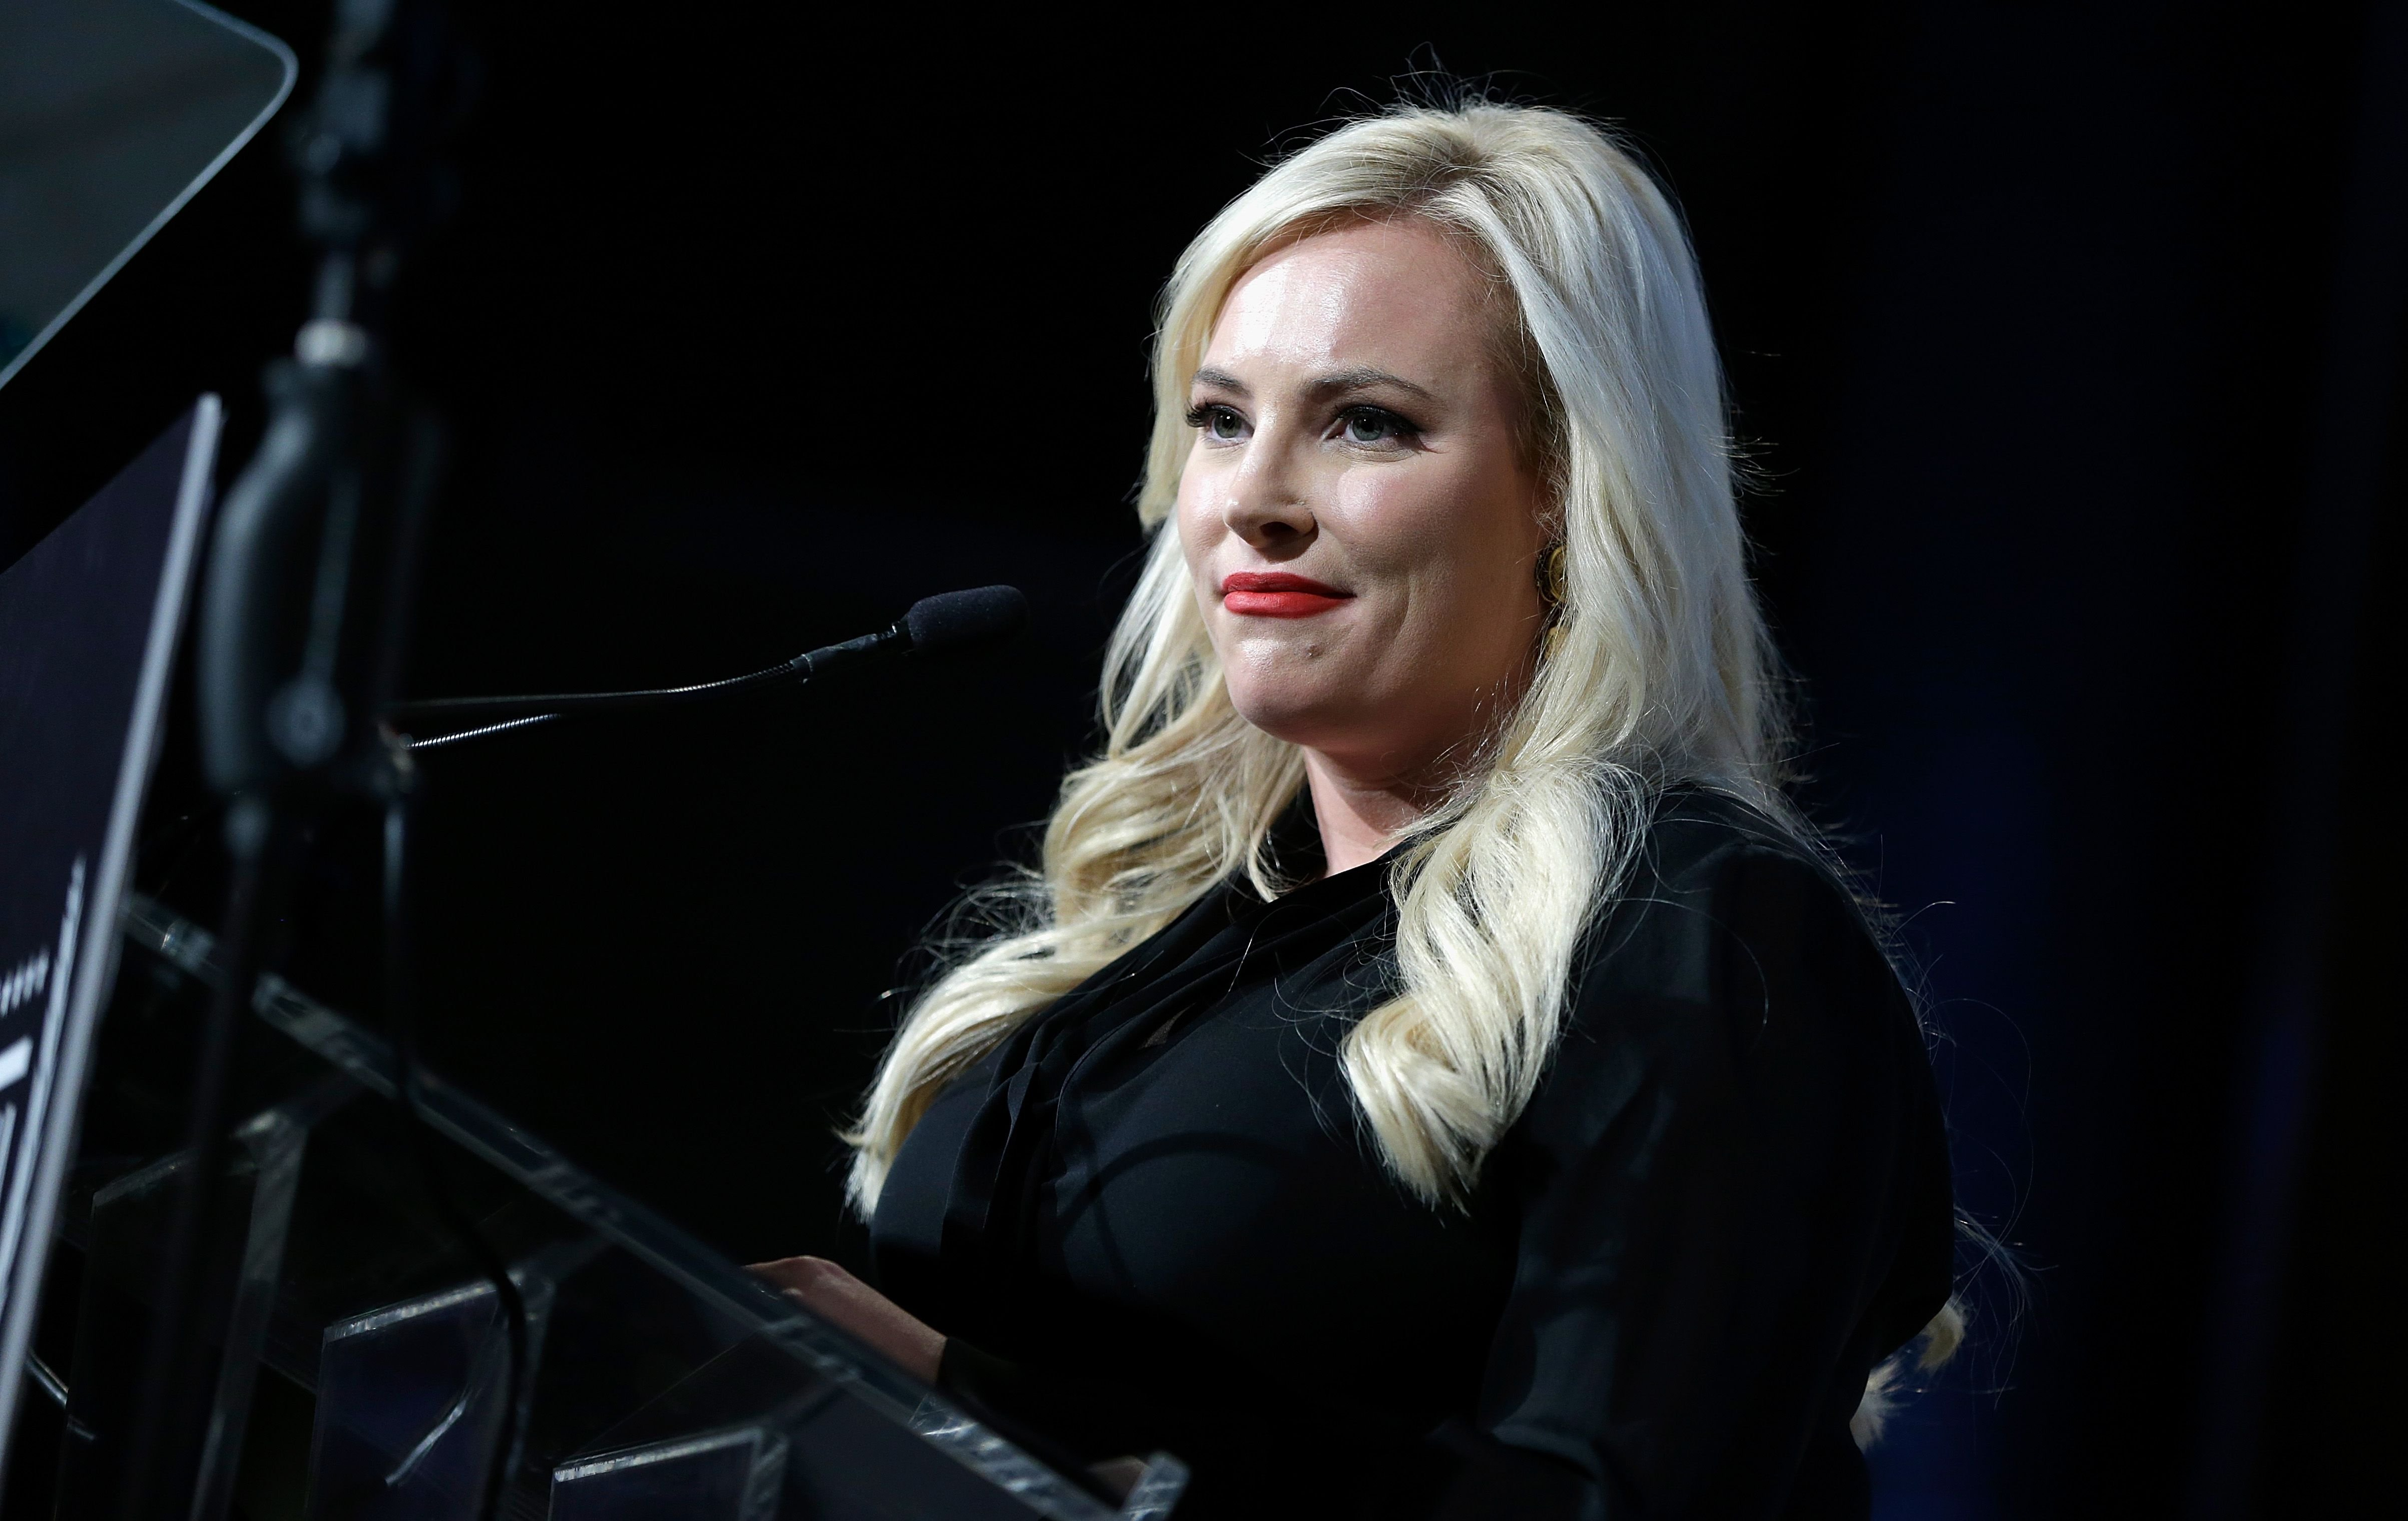 Meghan McCain at 11th Annual IAVA Heroes Gala at Cipriani 42nd Street on November 9, 2017 in New York City   Photo: Getty Images